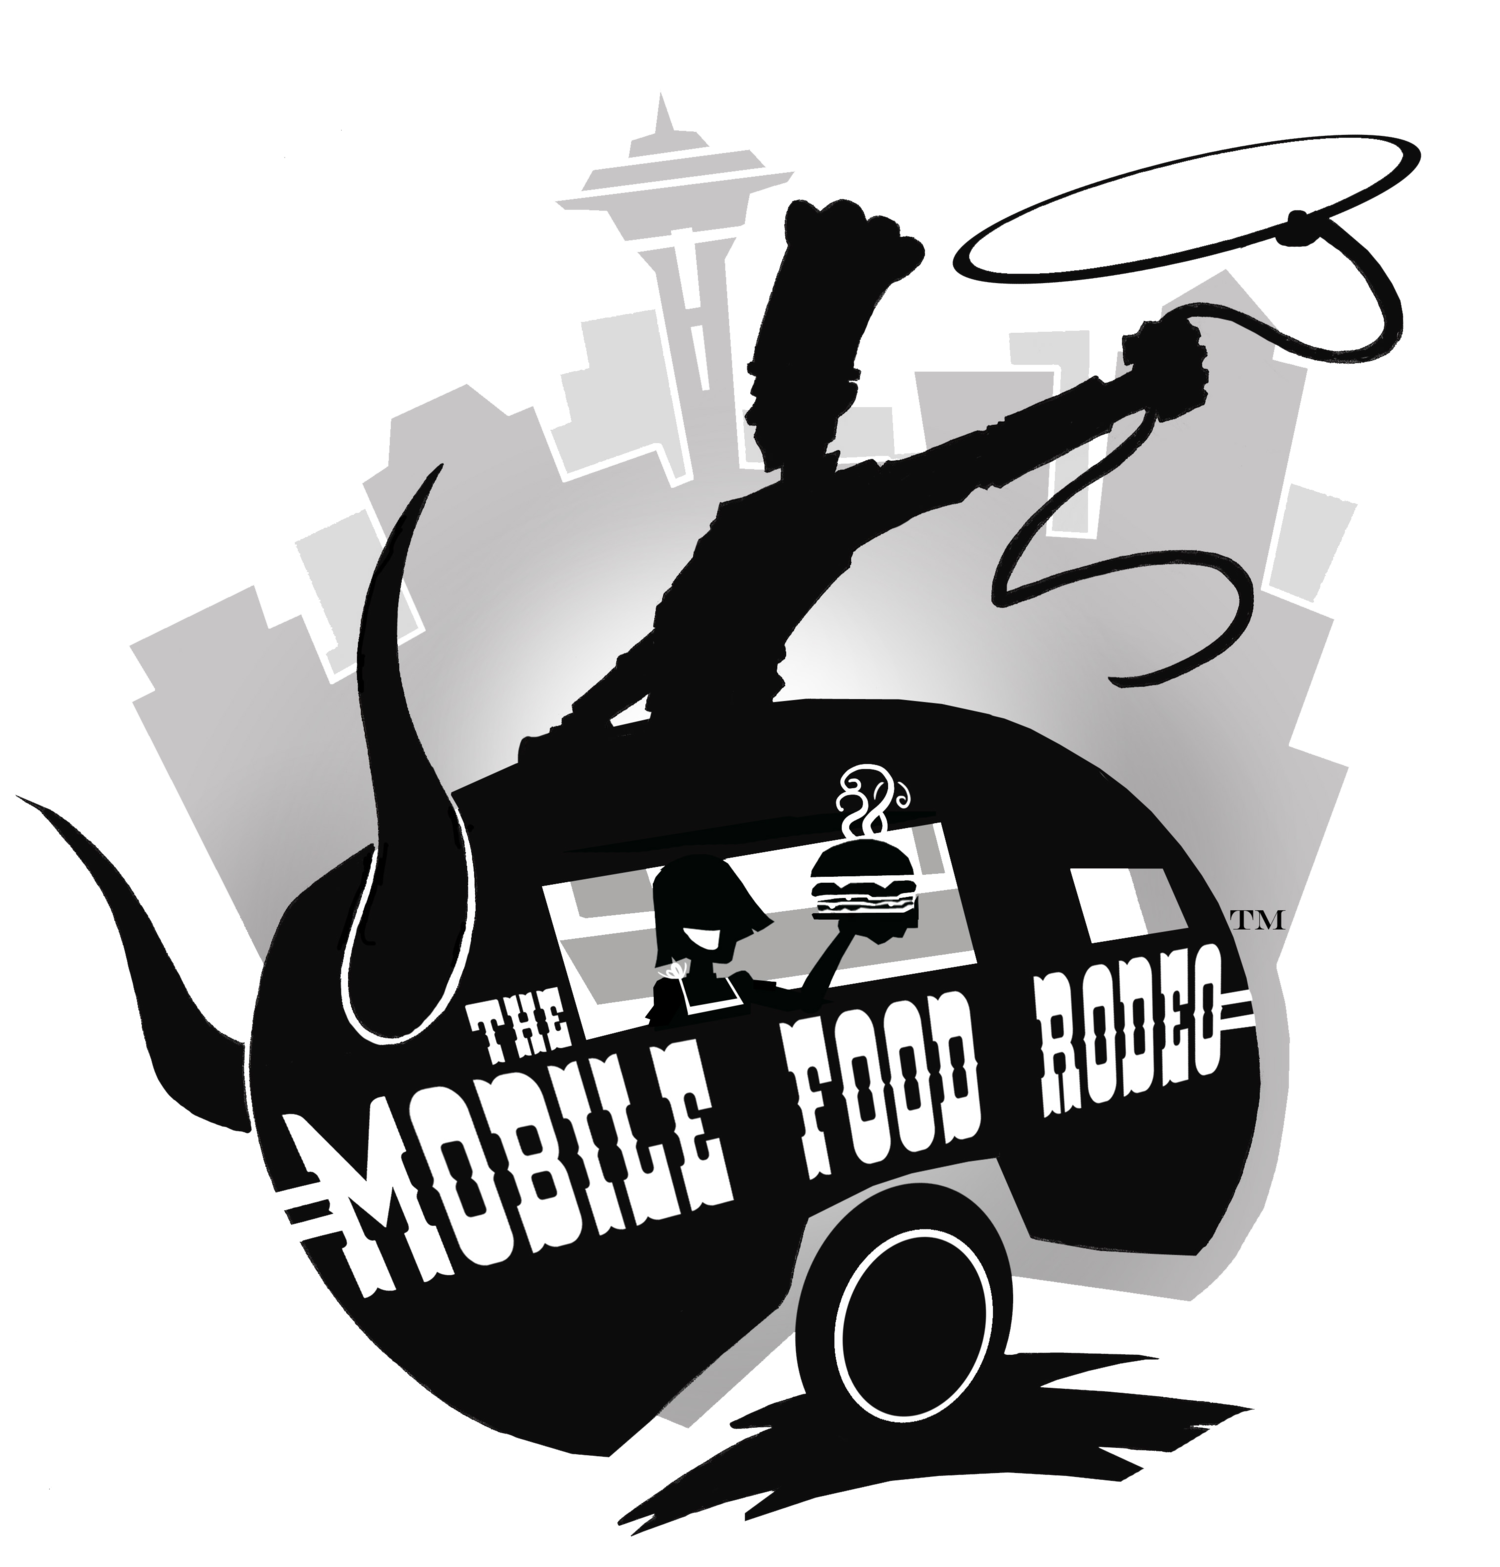 University VW and Audi presents MOBILE FOOD RODEO